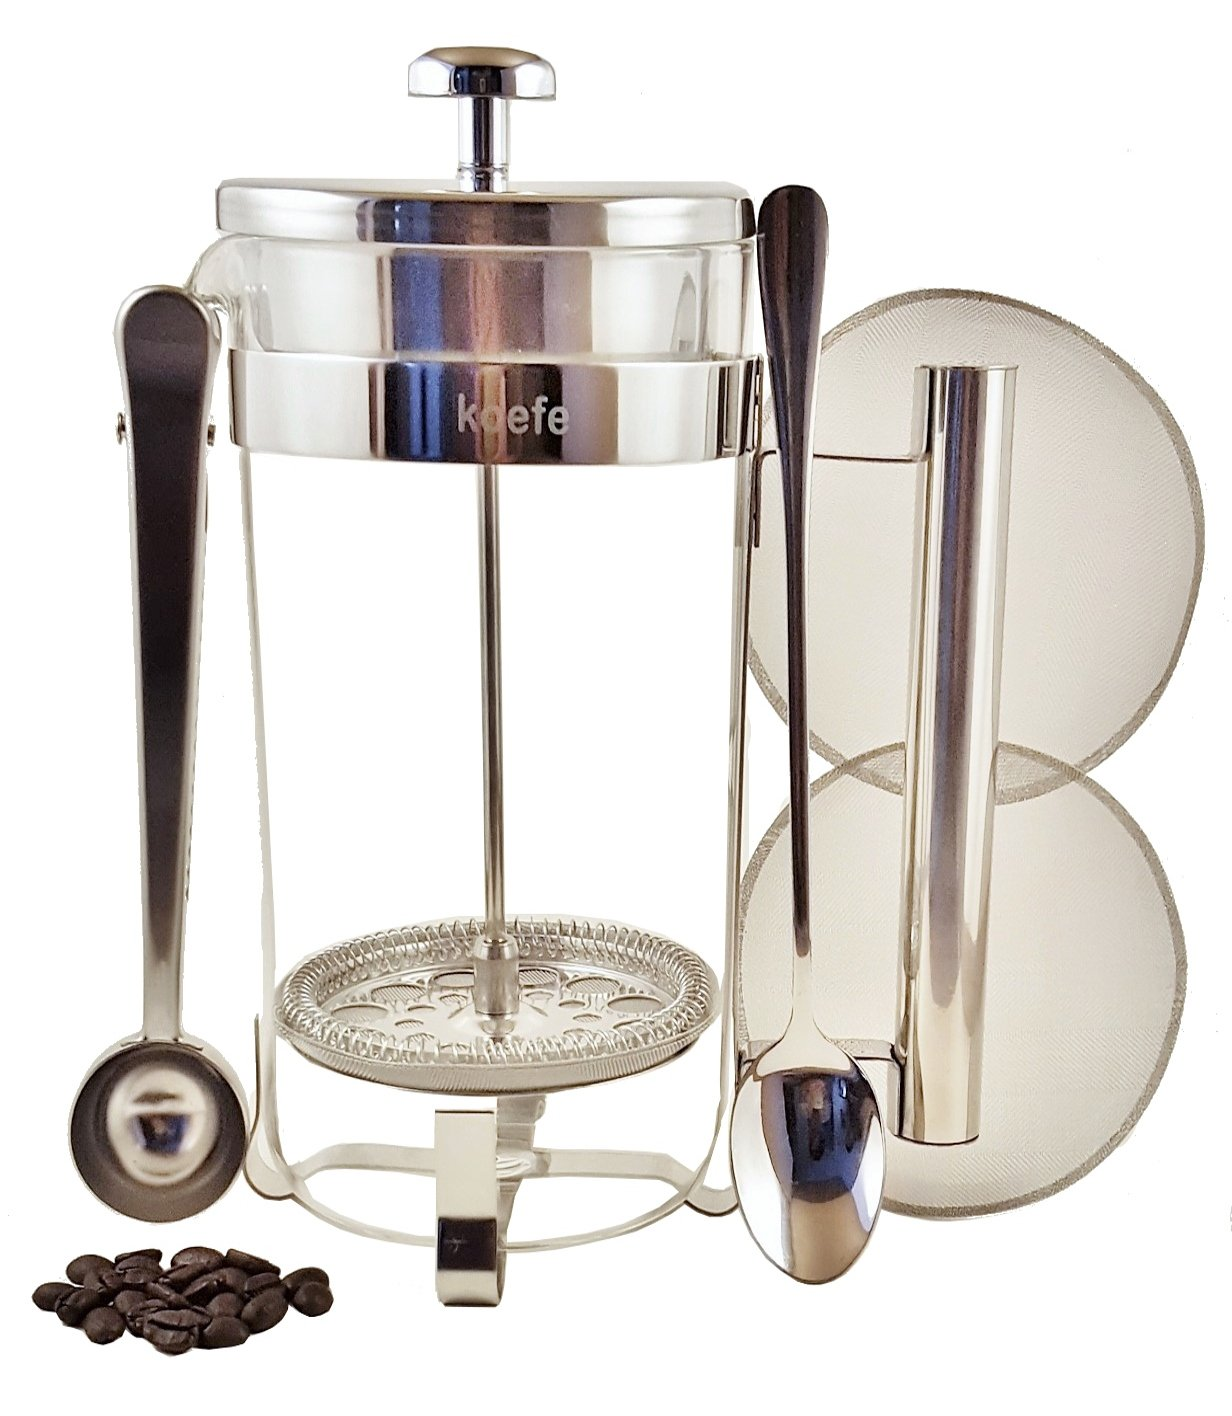 Classic French Press Coffee, Expresso & Tea Maker Complete Bundle Set   34 Oz, 8 Cups   Best Stainless Steel Coffee Press Pot with Double German Glass